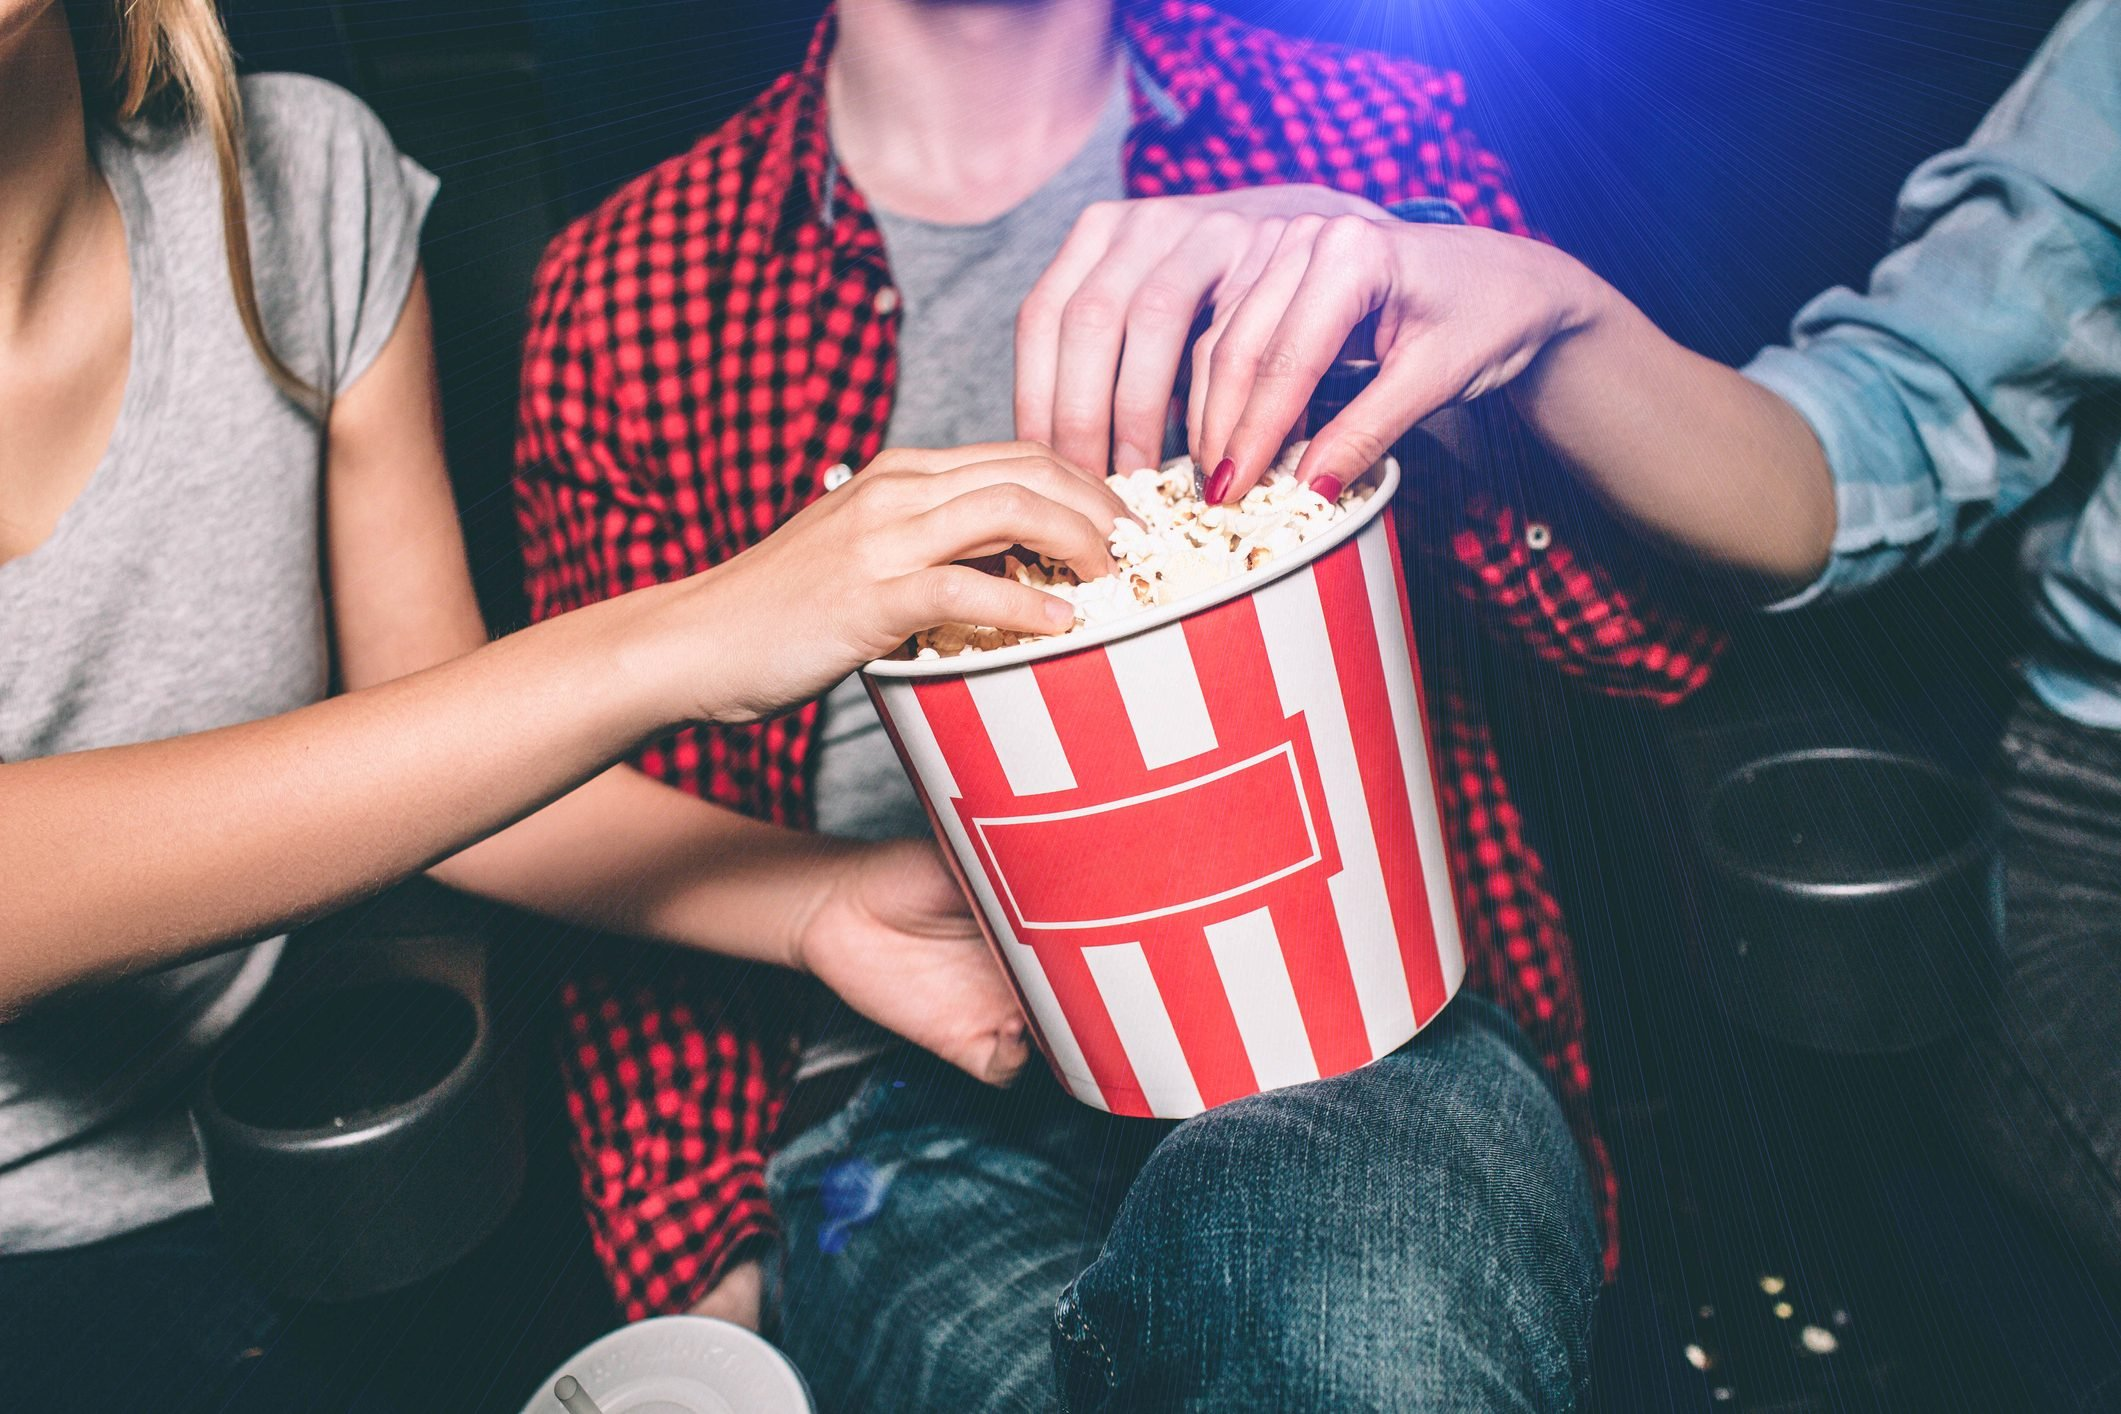 Close up of red with white basket of popcorn that both girl and guy are holding. All of them are taking popcorn out of basket. Ð¡ut view.